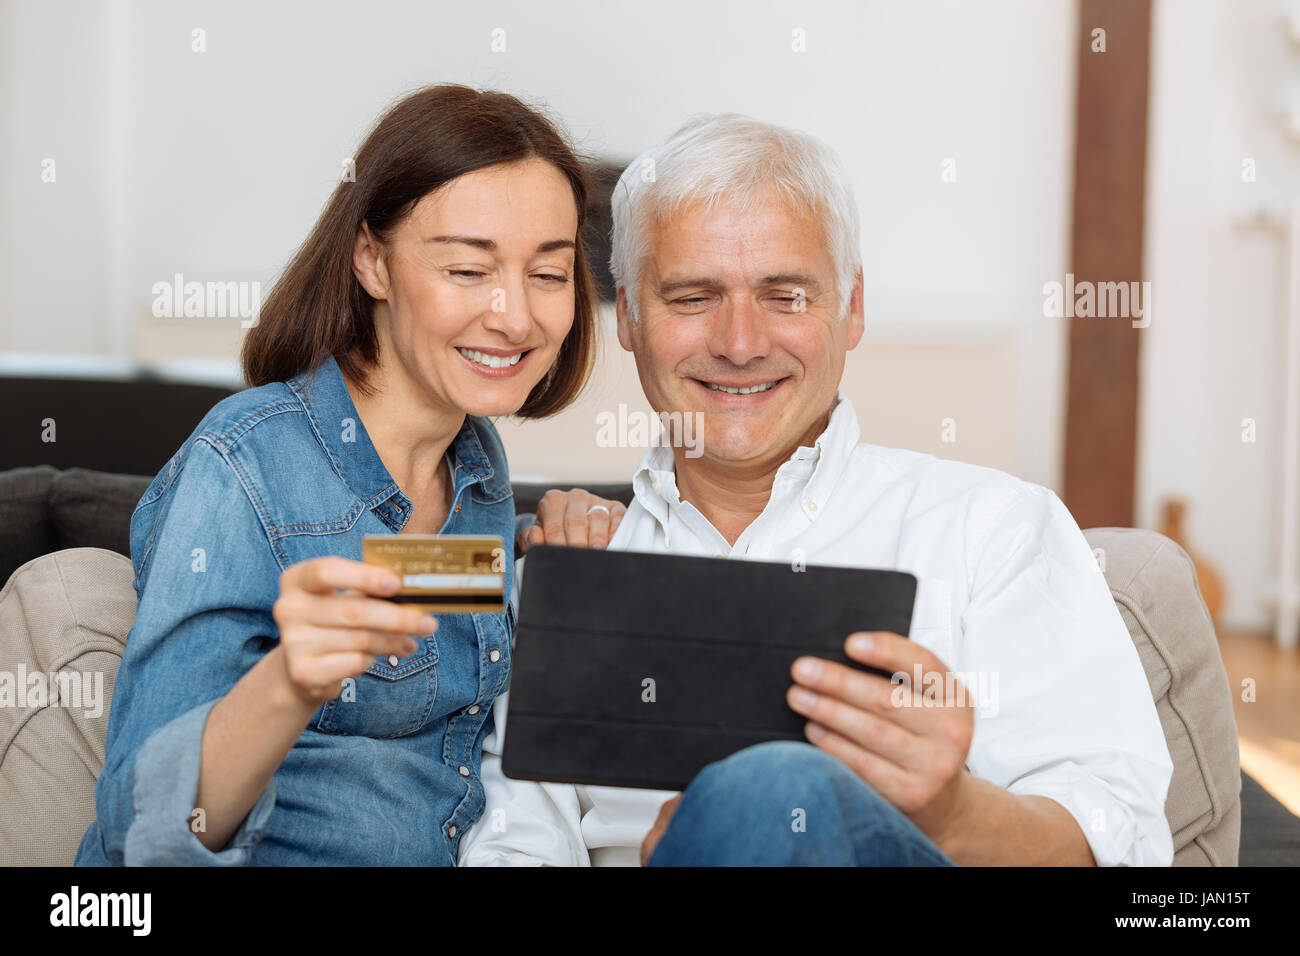 Mature couple using credit card to shop online - Stock Image